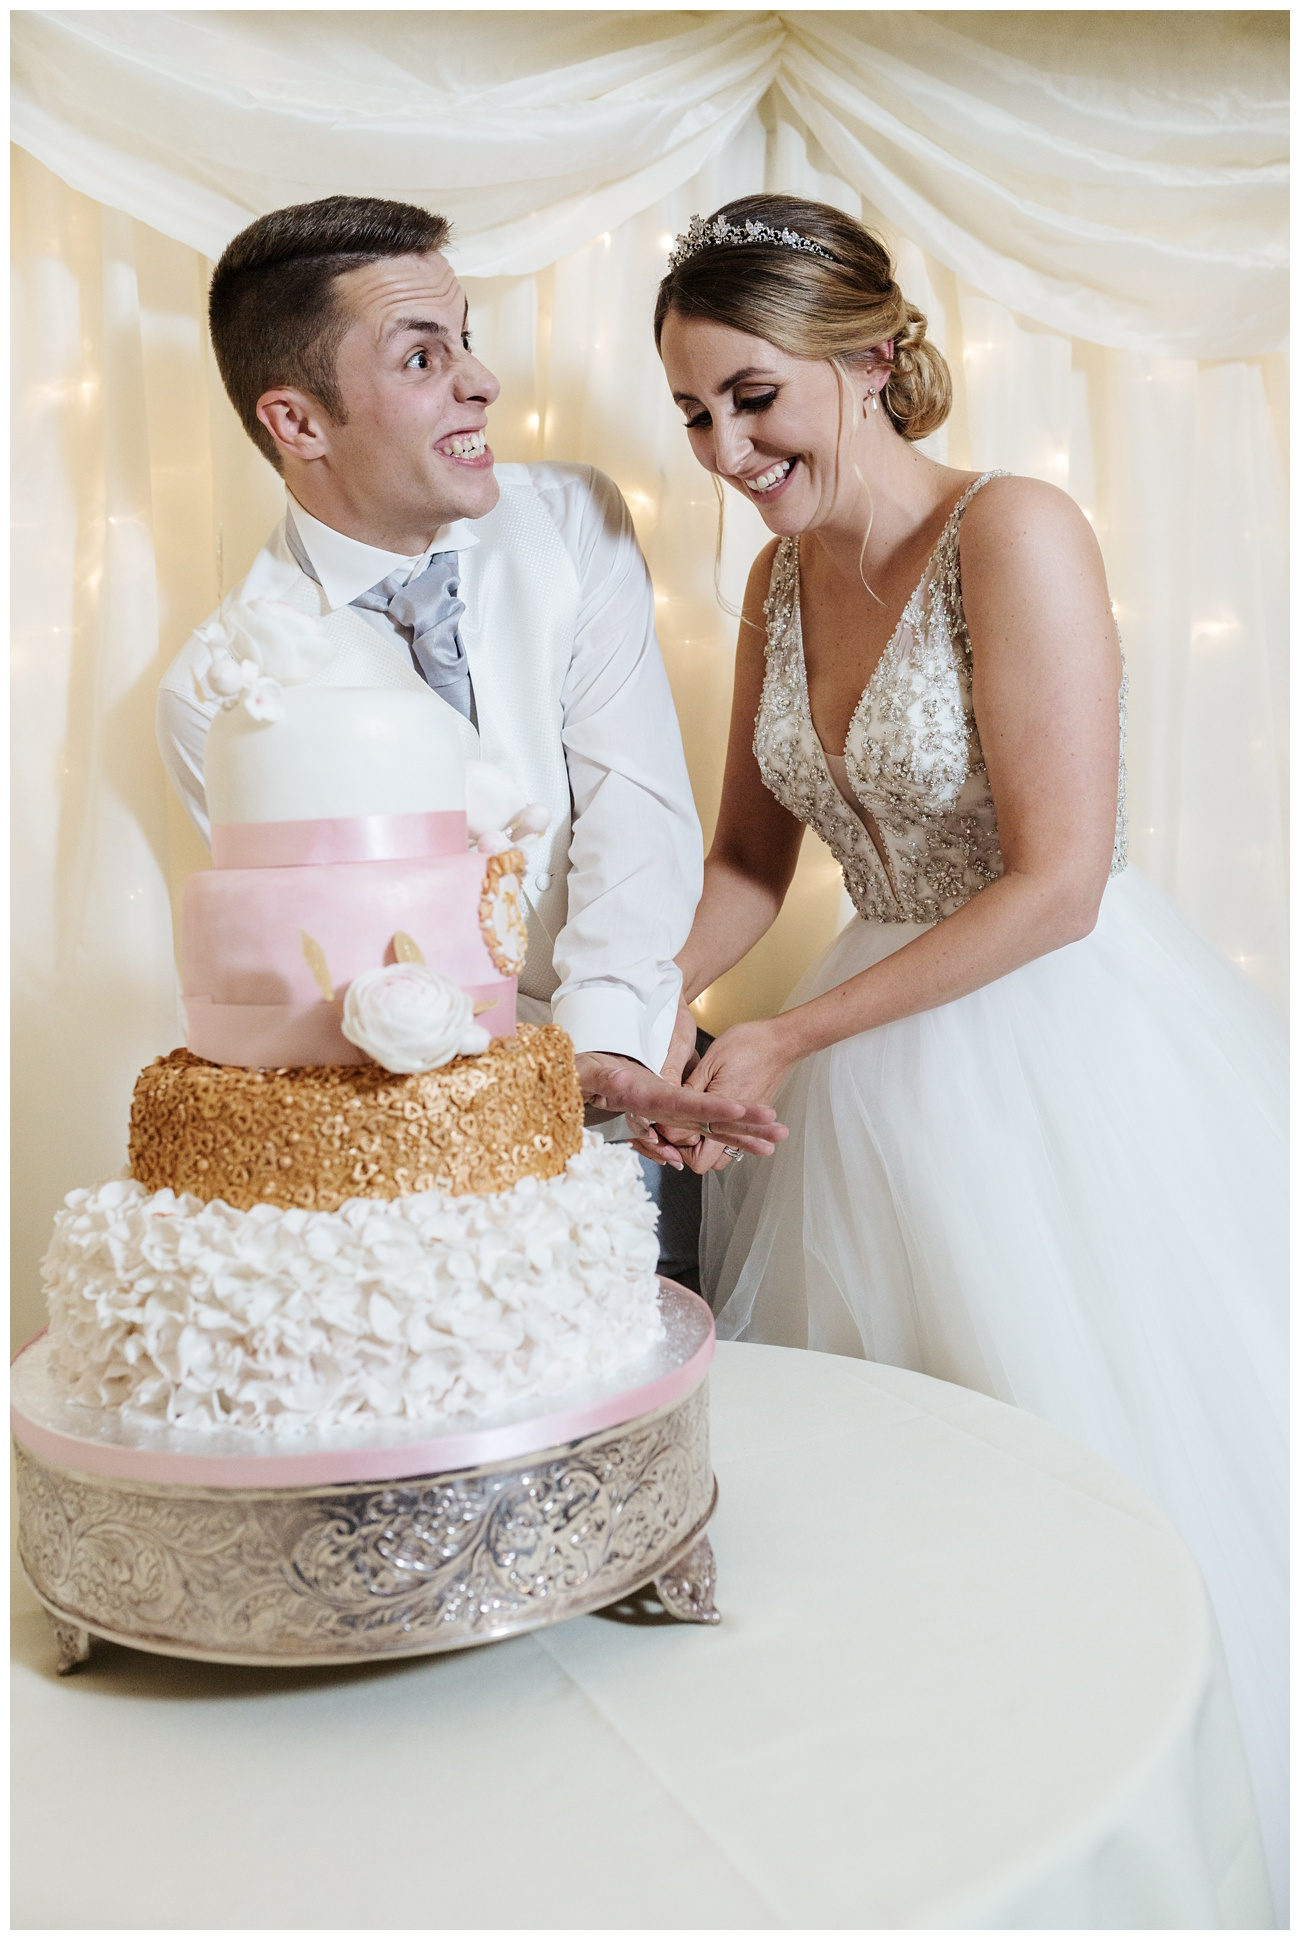 Fun shot of the bride and groom laughing cutting their wedding cake